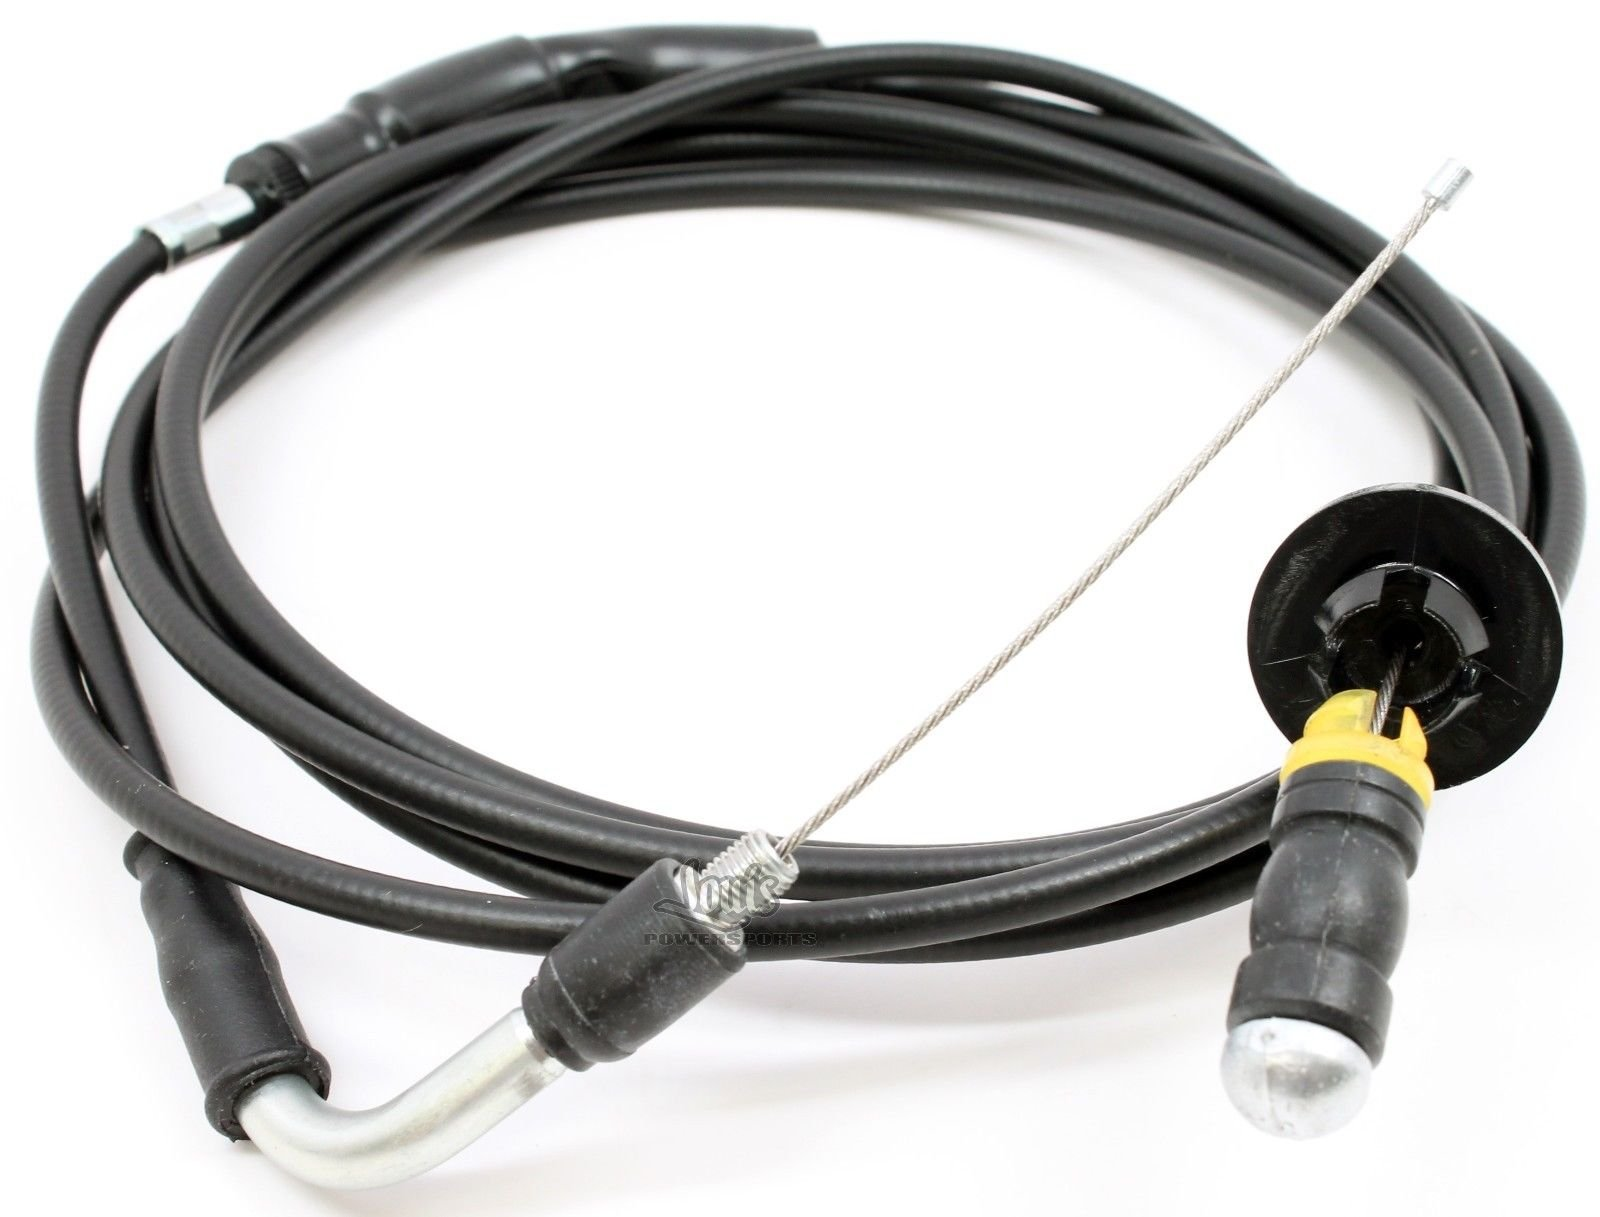 Polaris 7081247 CABLE-THROTTLE QTY 1